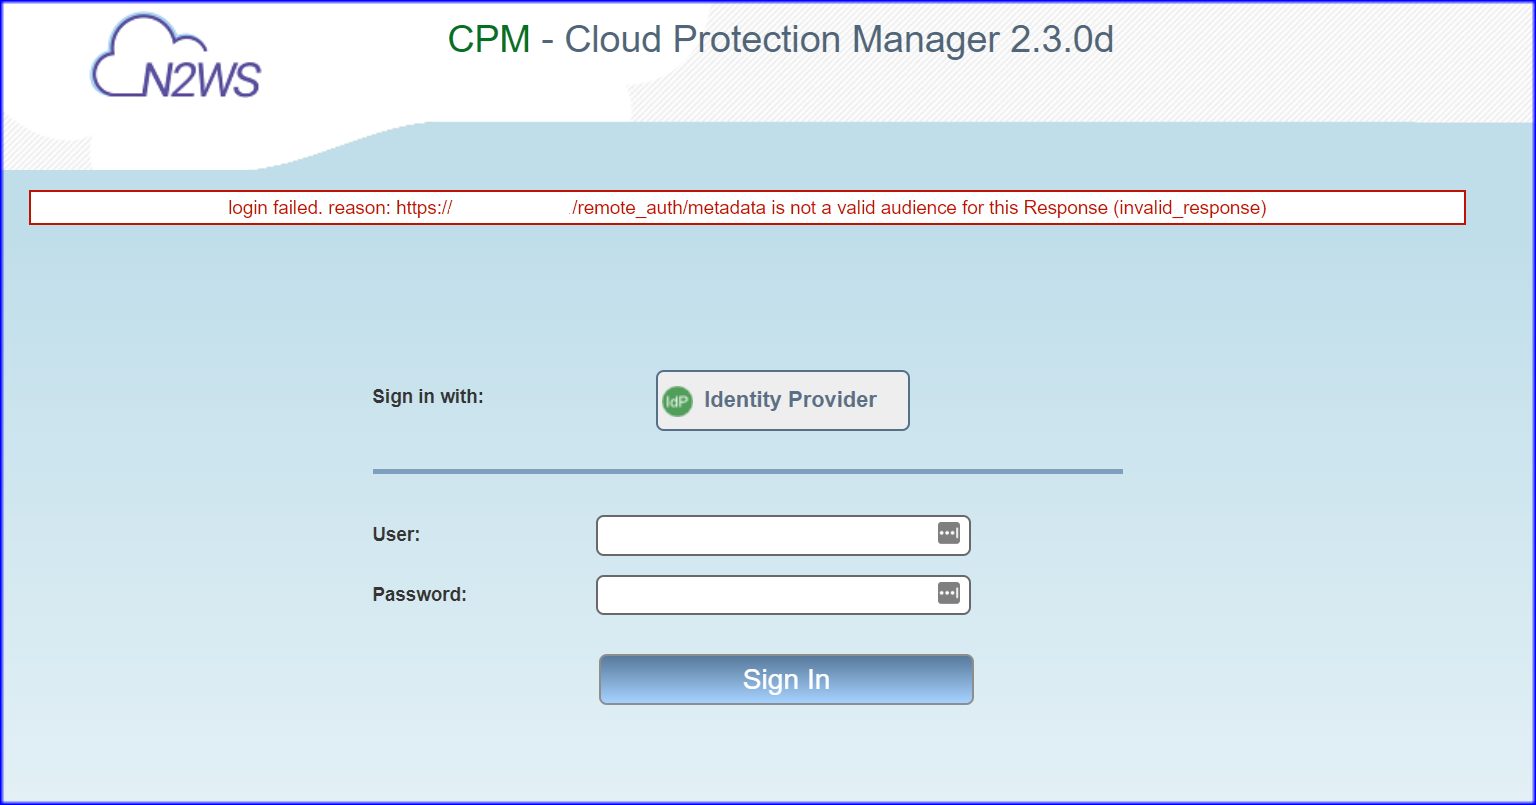 Login failure with the reason https://%cpm servername